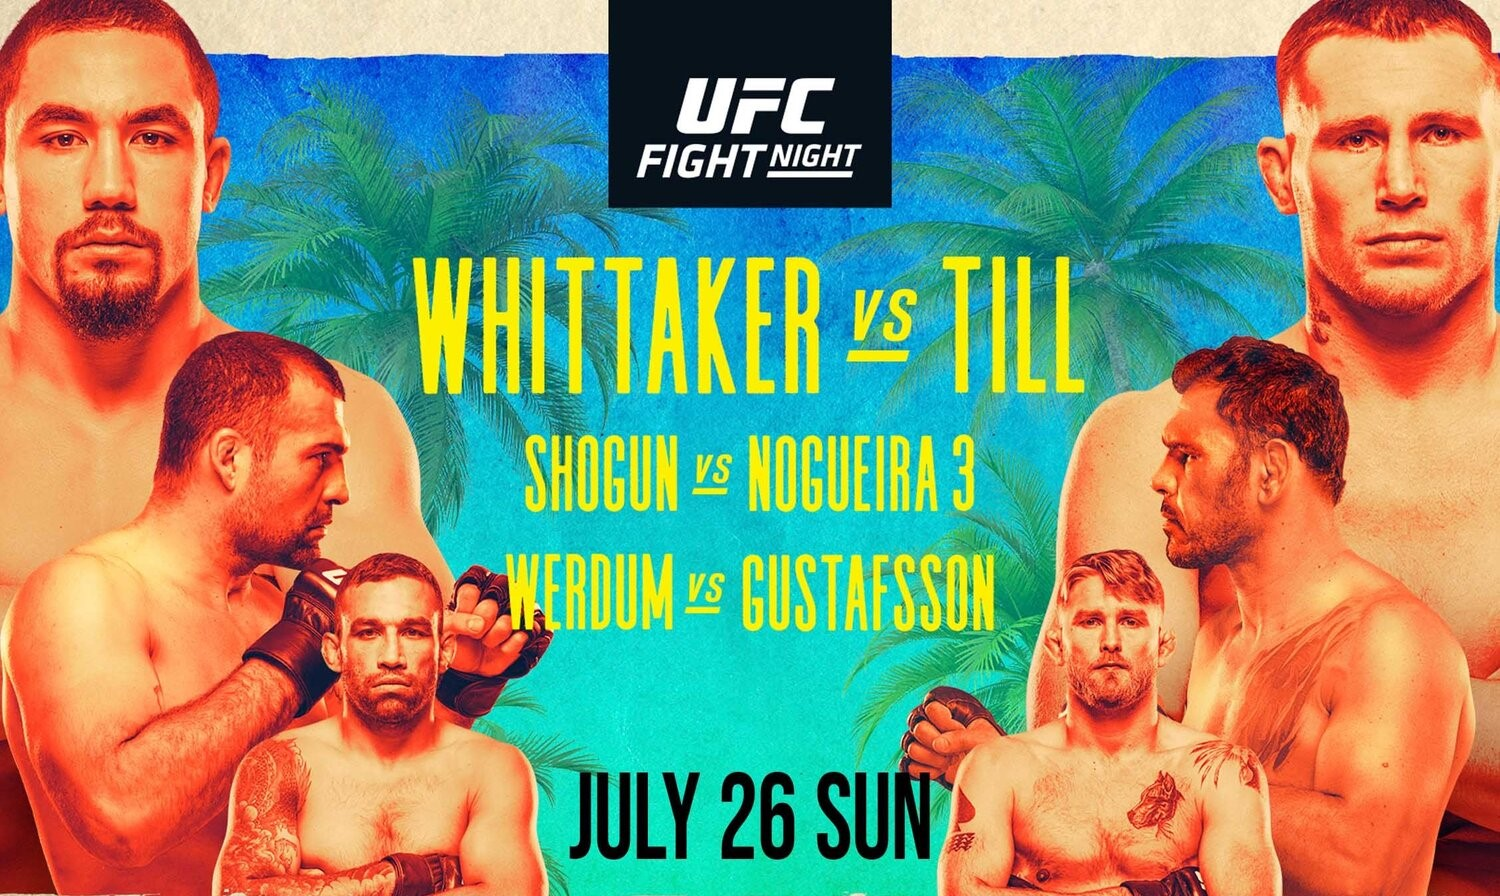 Ufc Fight Night 174 Preview Whittaker Vs Till Attack The Back